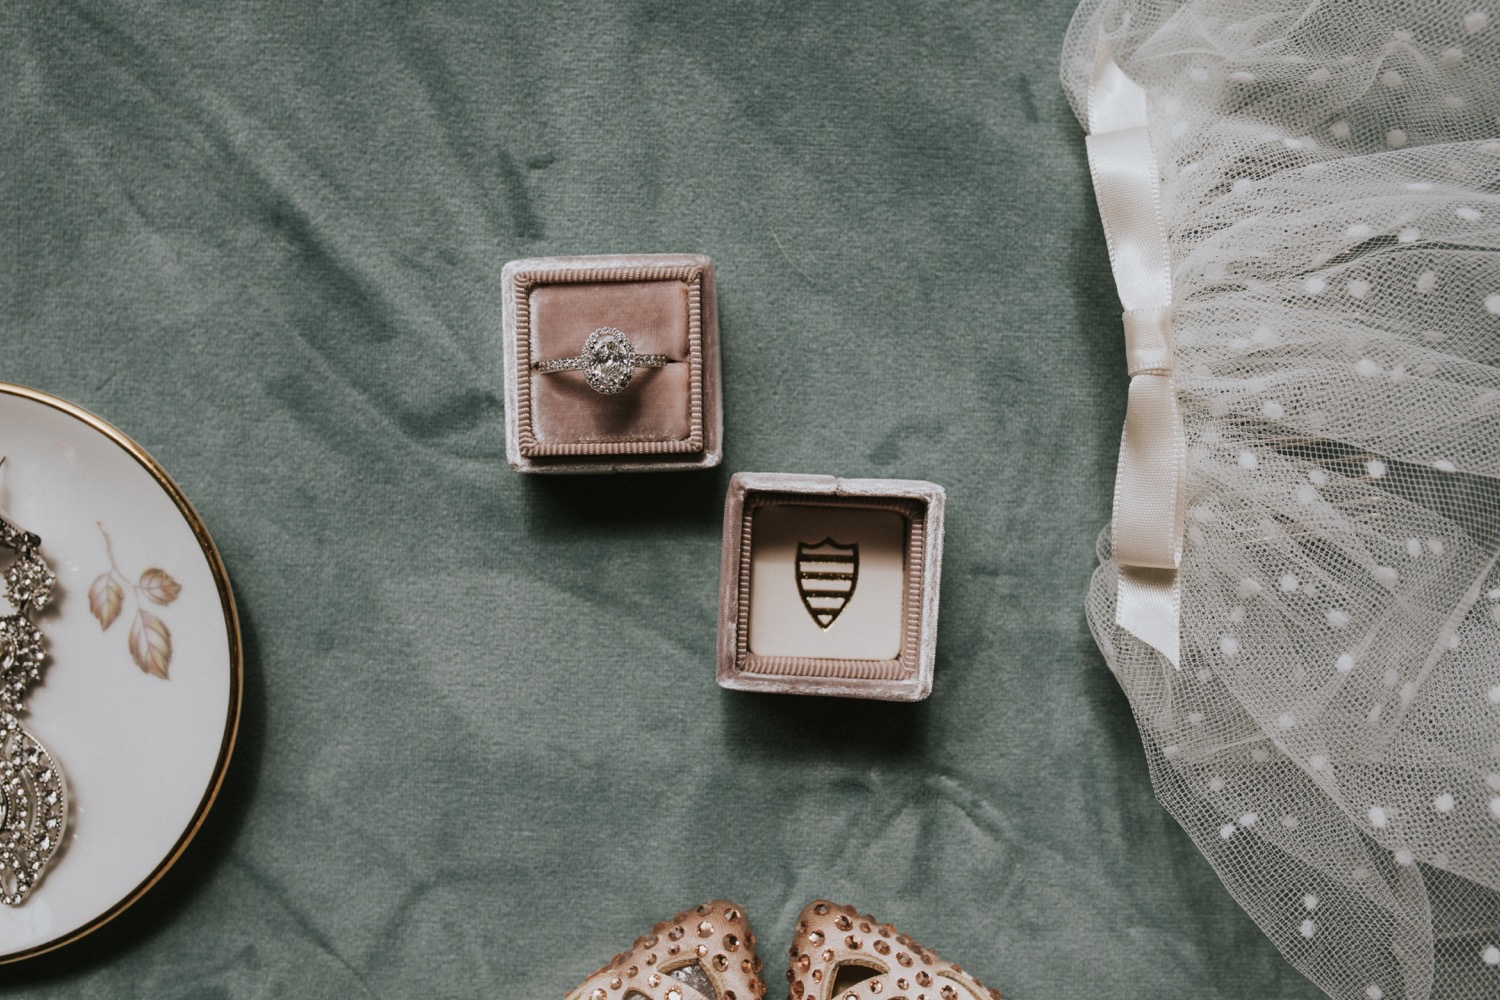 Hudson Valley Wedding Photographer, Arrow Park Lake and Lodge, Arrow Park Wedding, New York Wedding, Wedding Details, Wedding Flat Lay